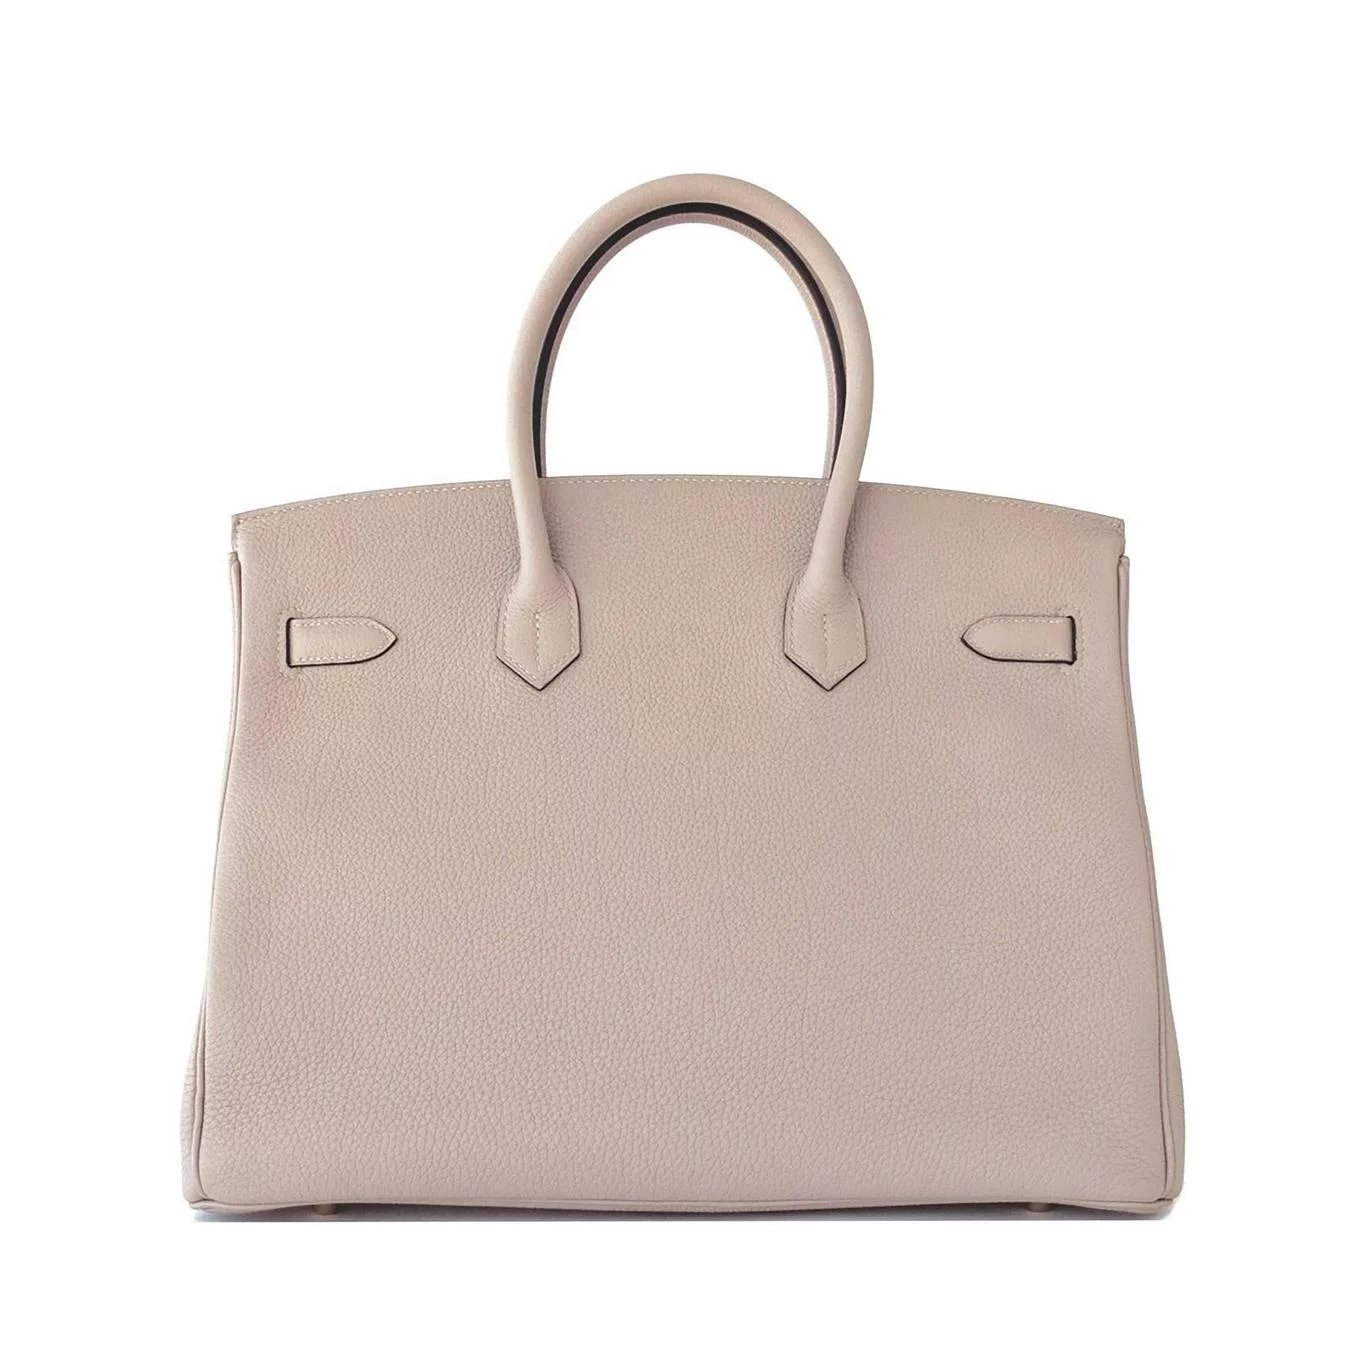 012dc3ea1c7b Hermes Gris Tourterelle 35cm Dove Grey Togo Birkin Gold GHW Tote Bag Chic.  Click to expand